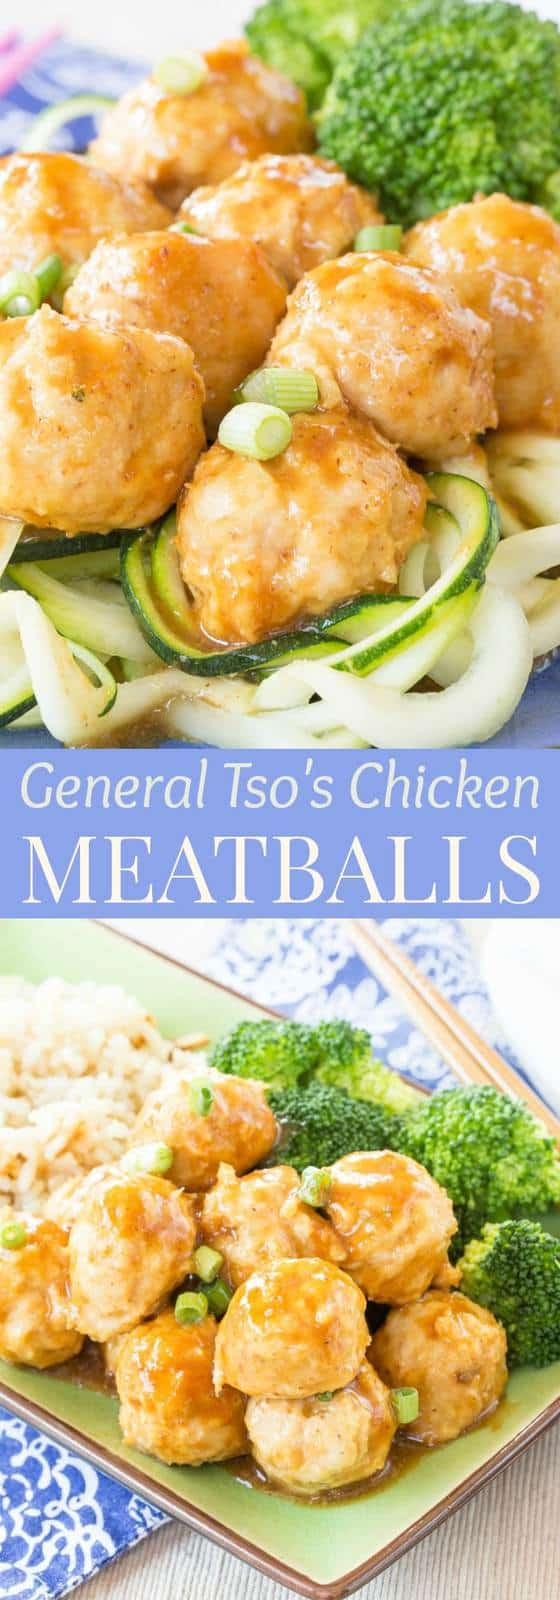 General Tso's Chicken Meatballs recipe from cupcakesandkalechips